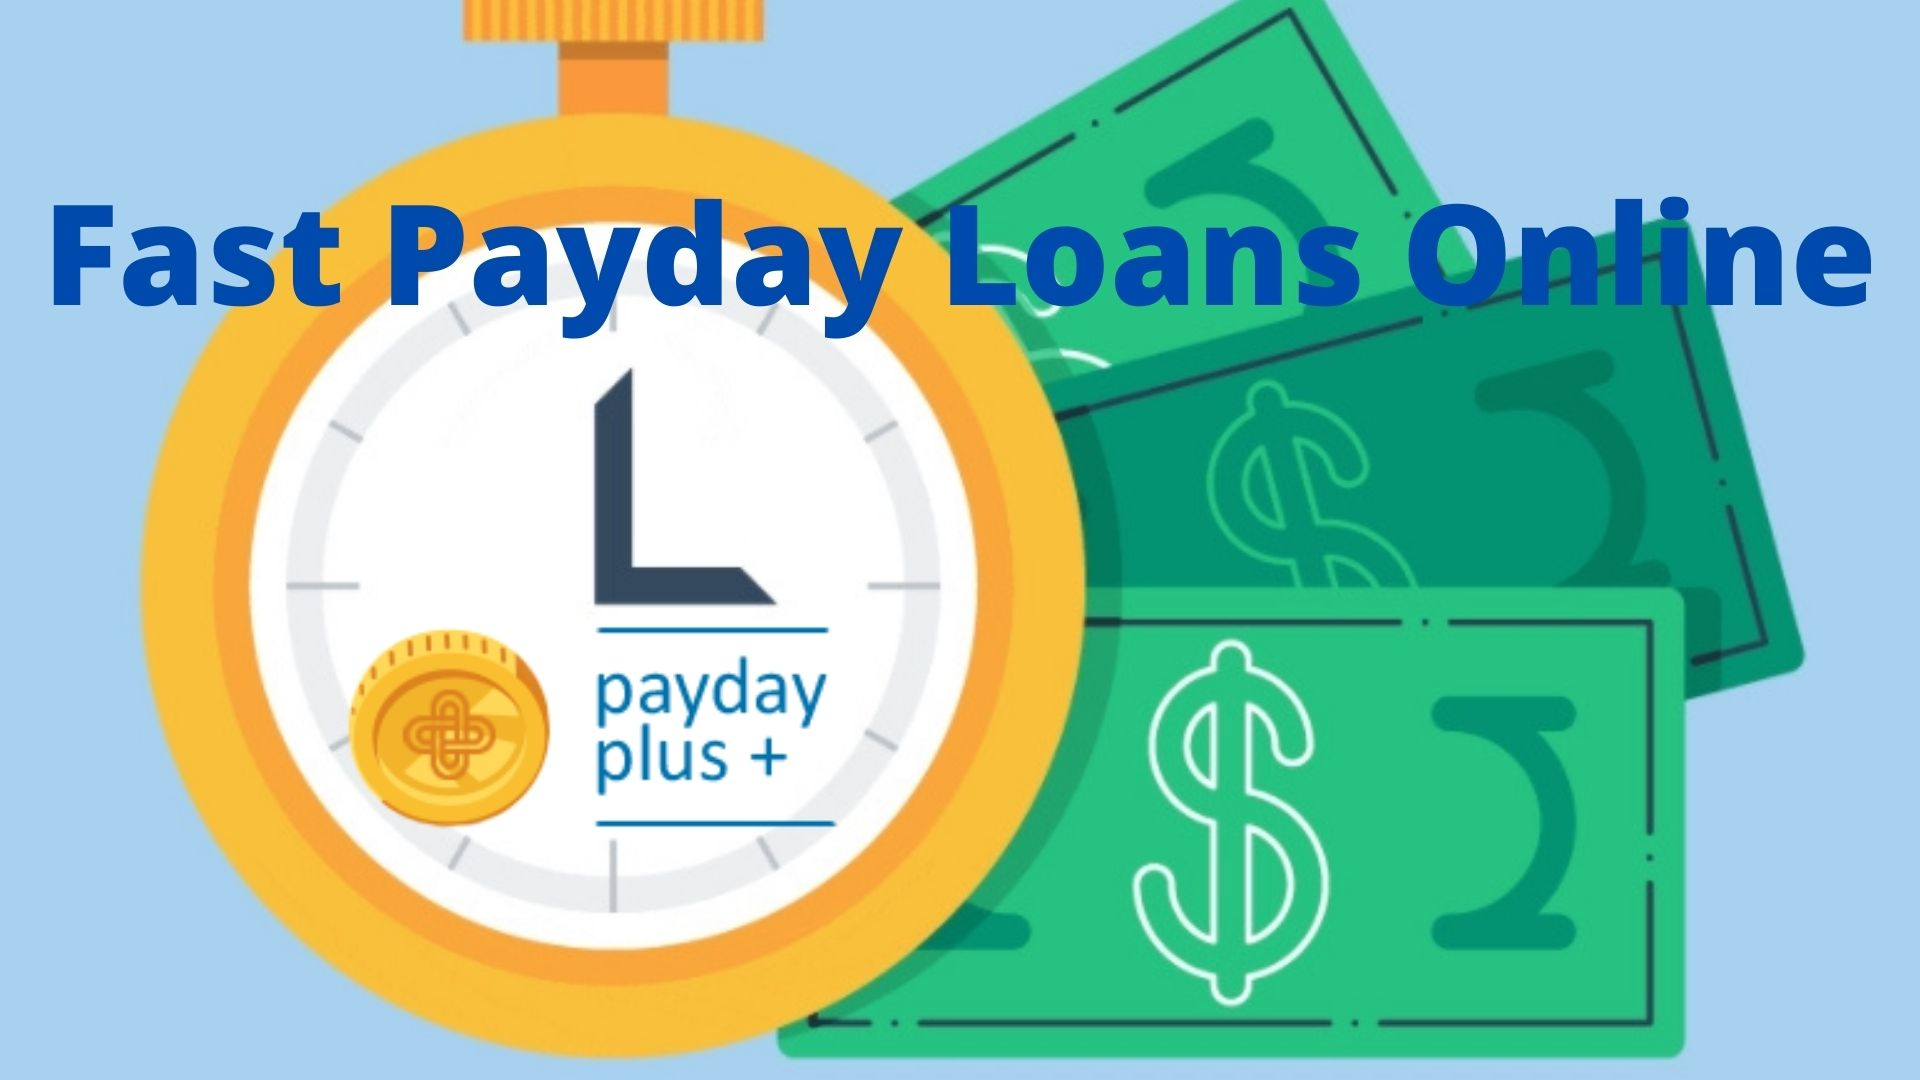 Get Fast Payday Loans Online